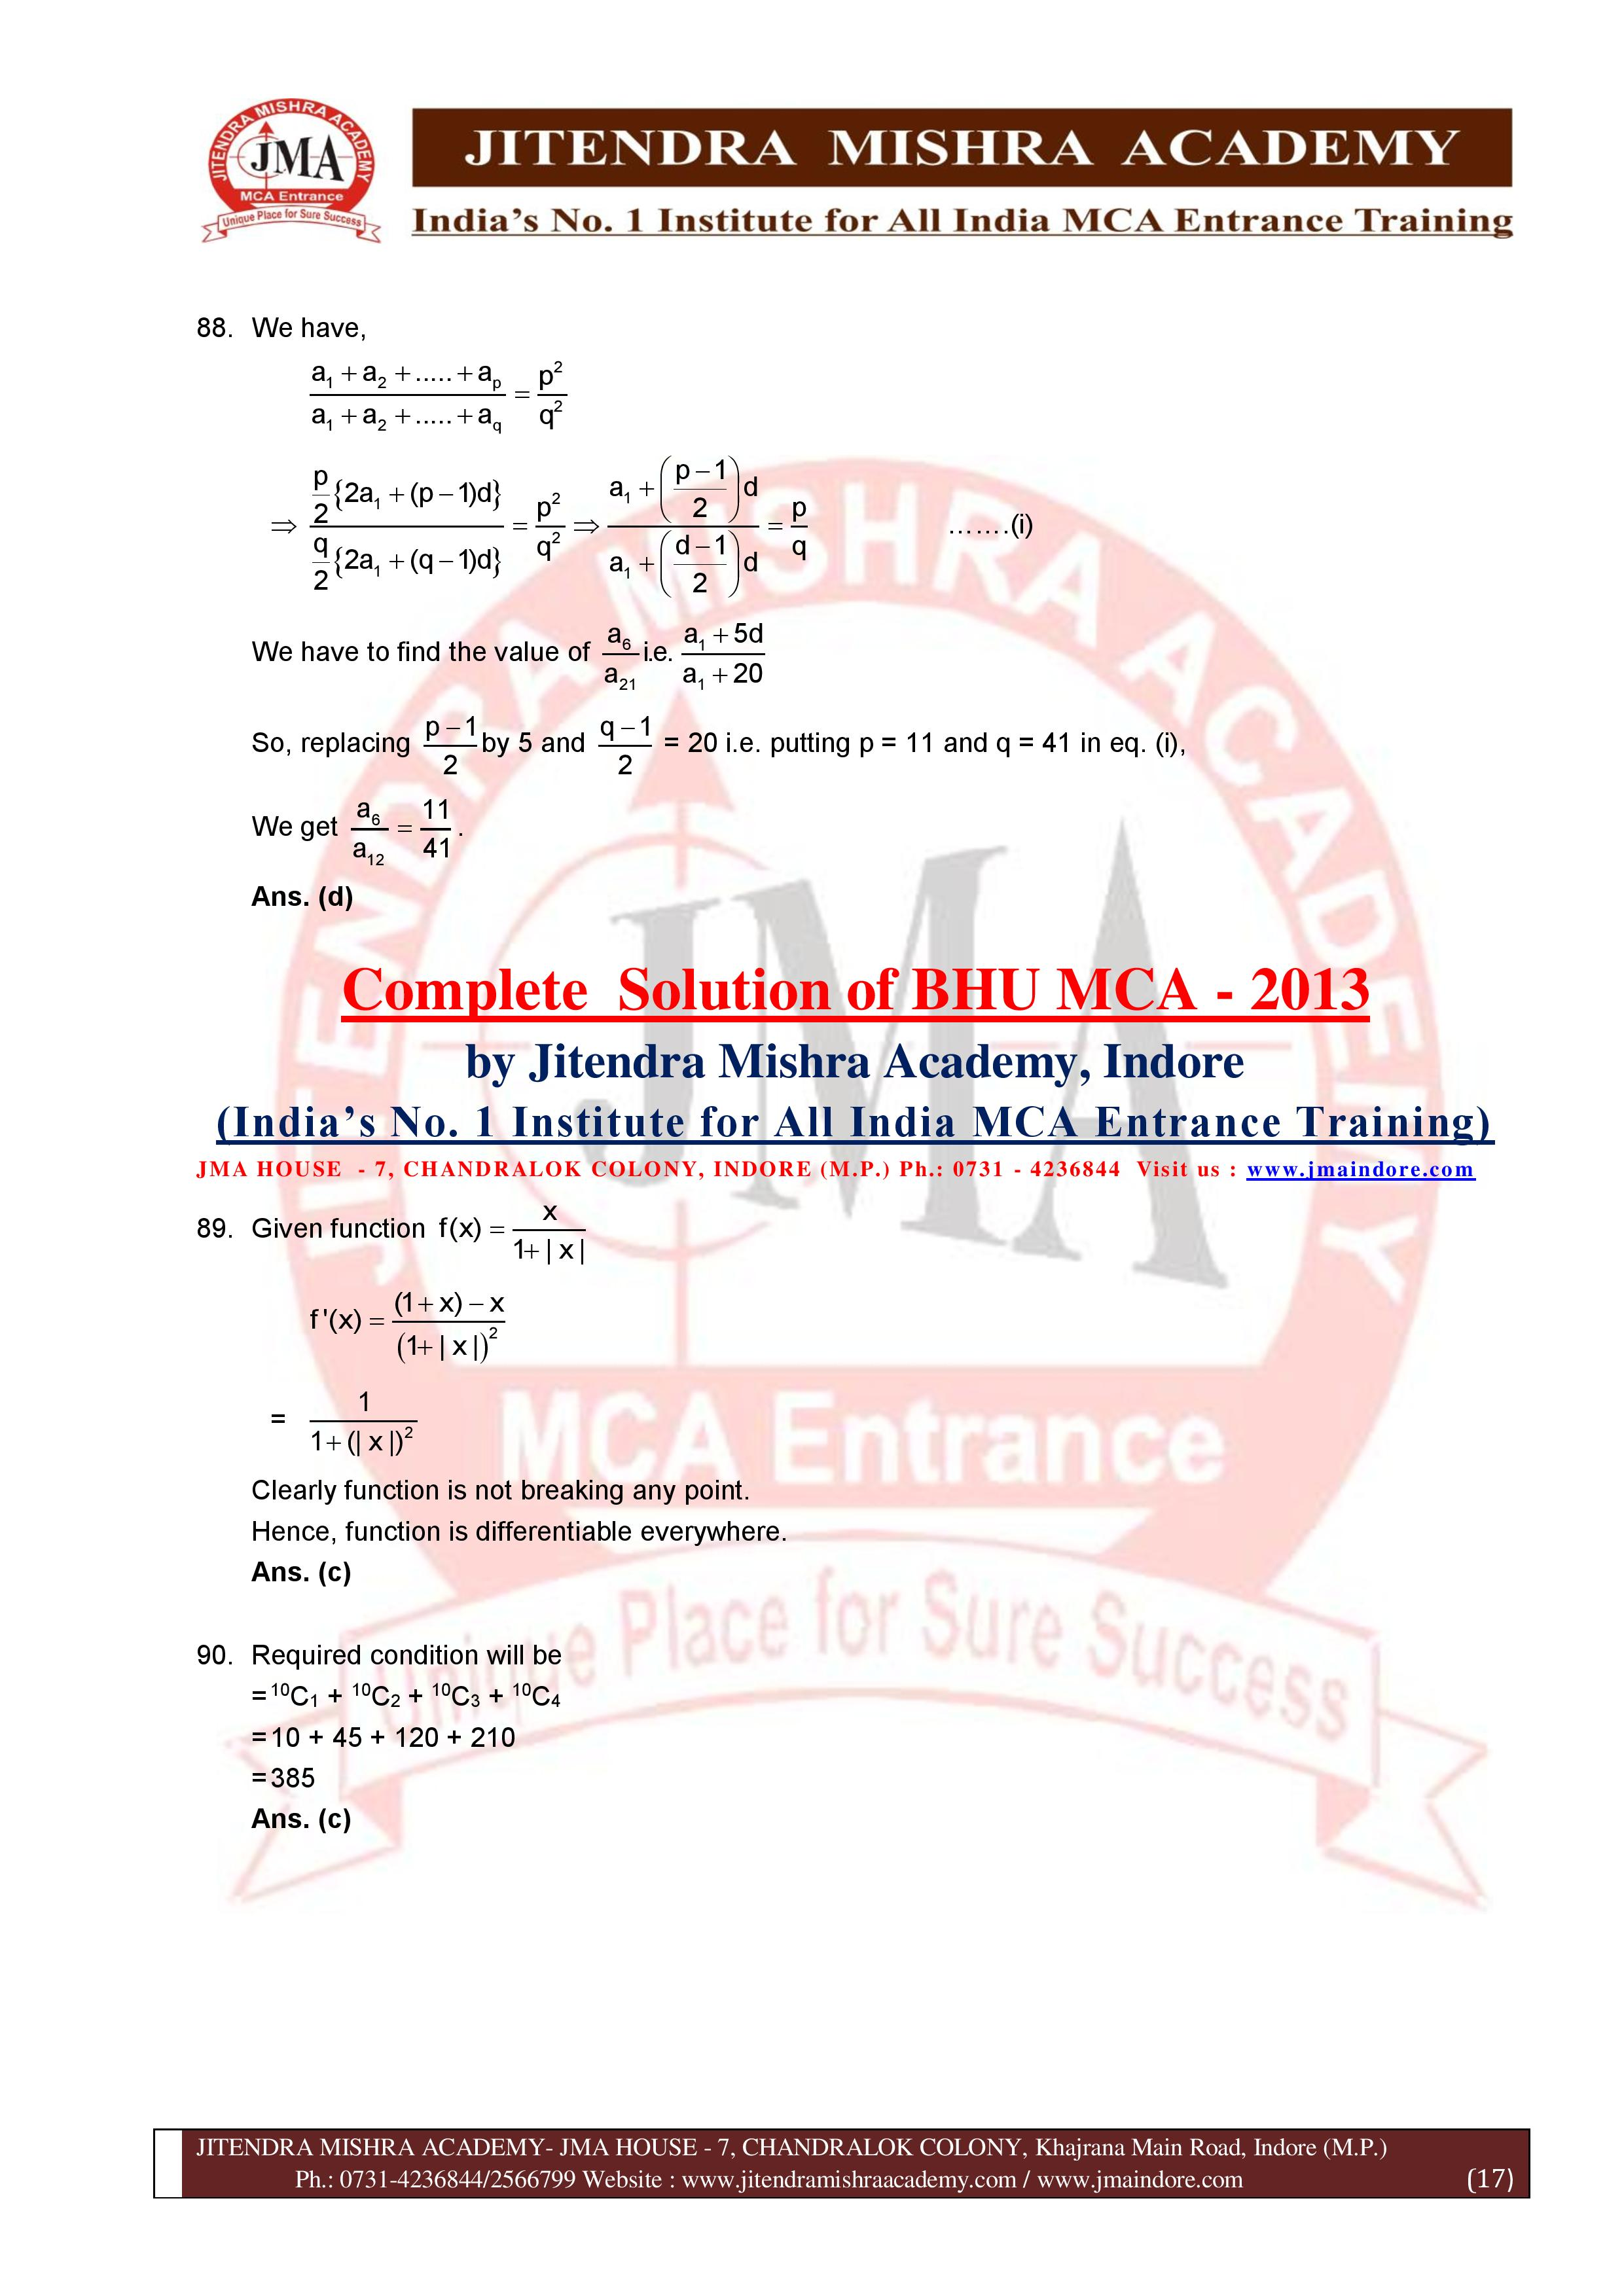 BHU 2013 SOLUTION (SET - 3) (06.07.16)-page-017